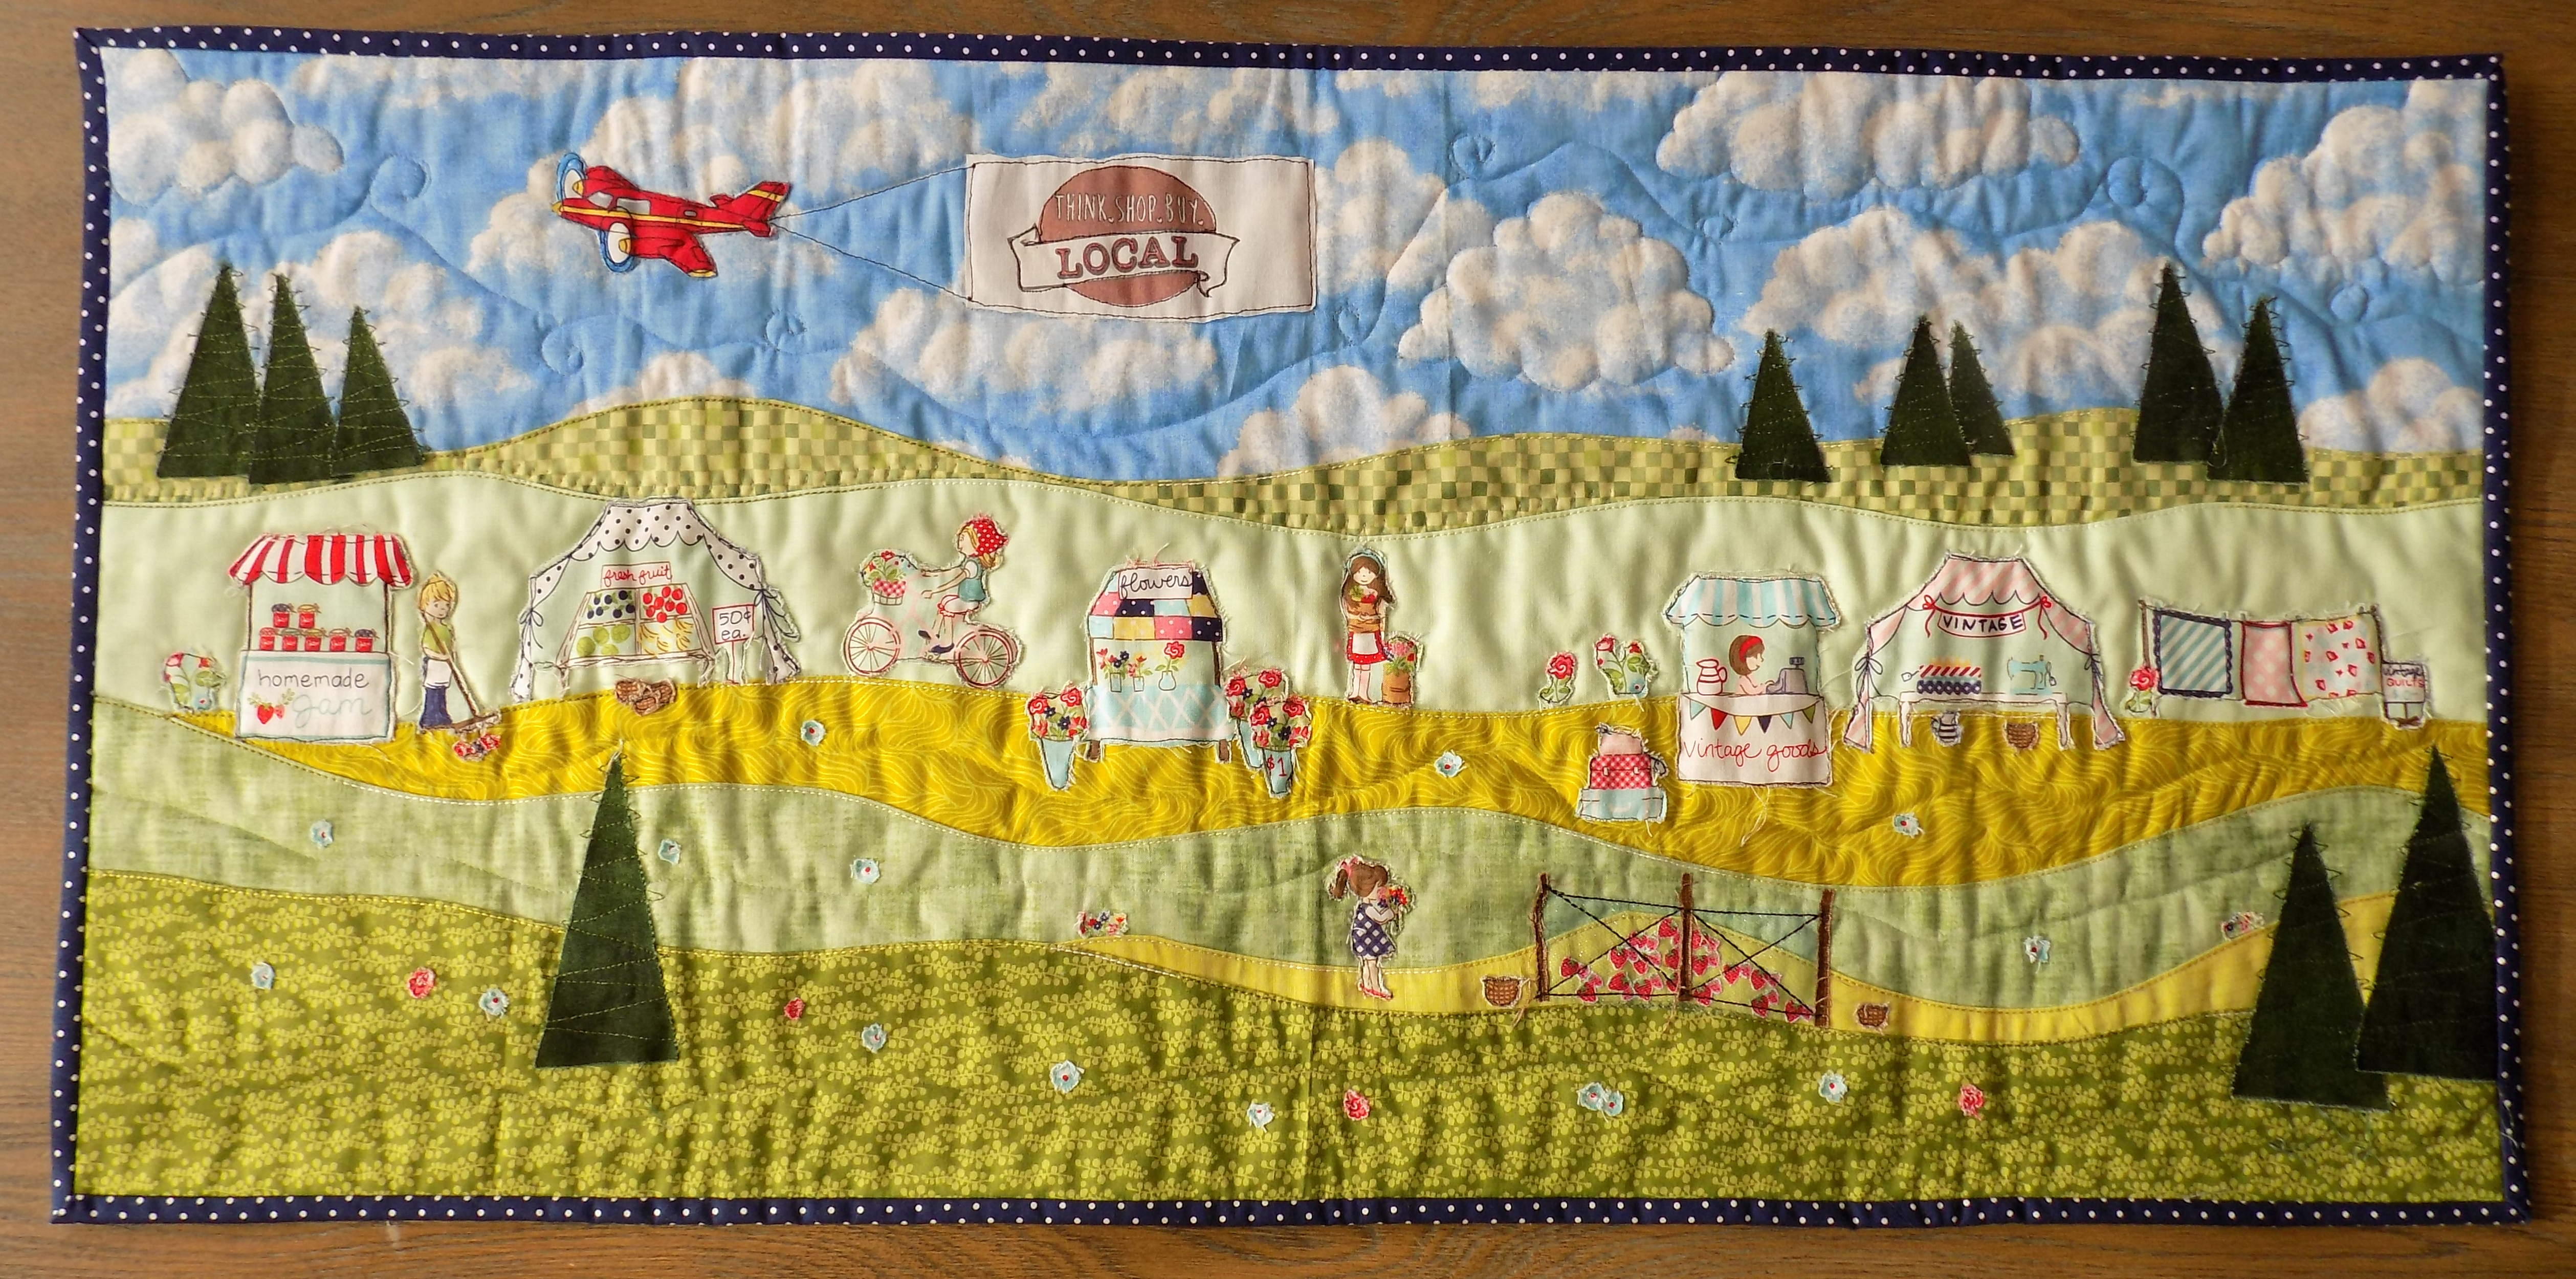 Raw edge applique landscape made from Riley Blake's Vintage Market line